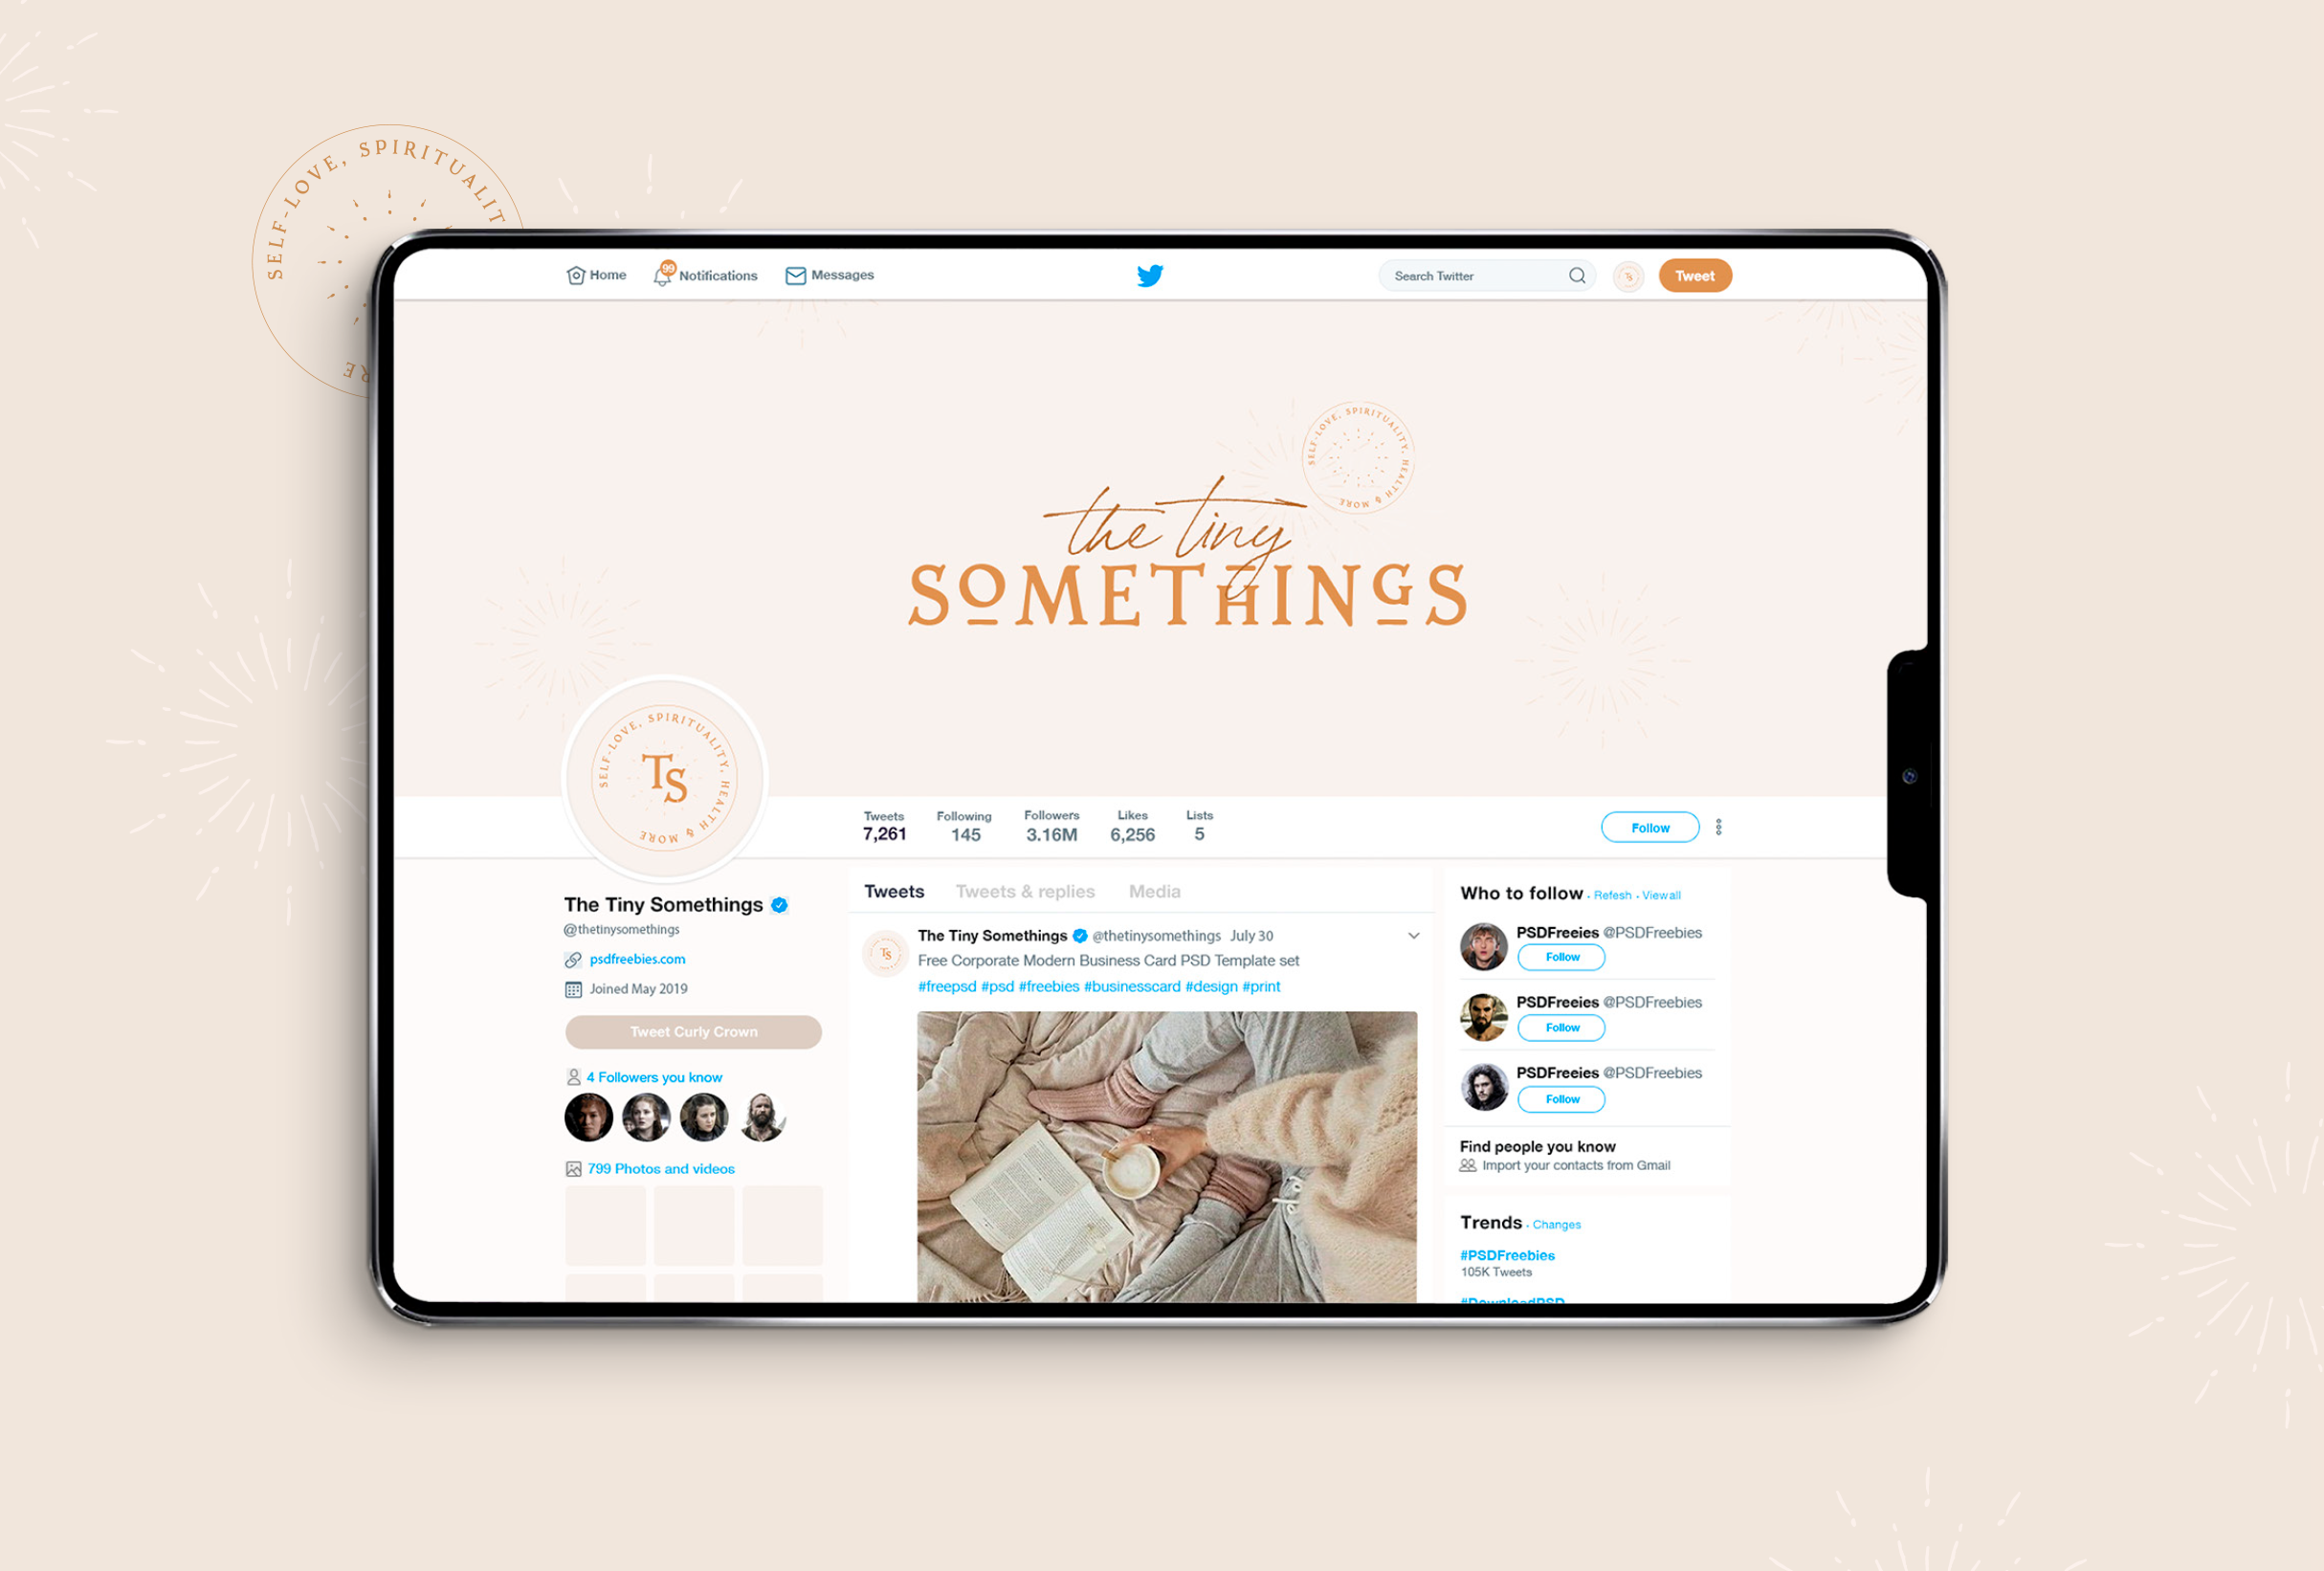 Twitter design for The Tiny Somethings, a lifestyle blog that shares little snippets of advice and experiences on different areas of life including personal growth, self-love, spirituality, health & wellness, and more - designed by Wiltshire-based graphic designer, Kaye Huett